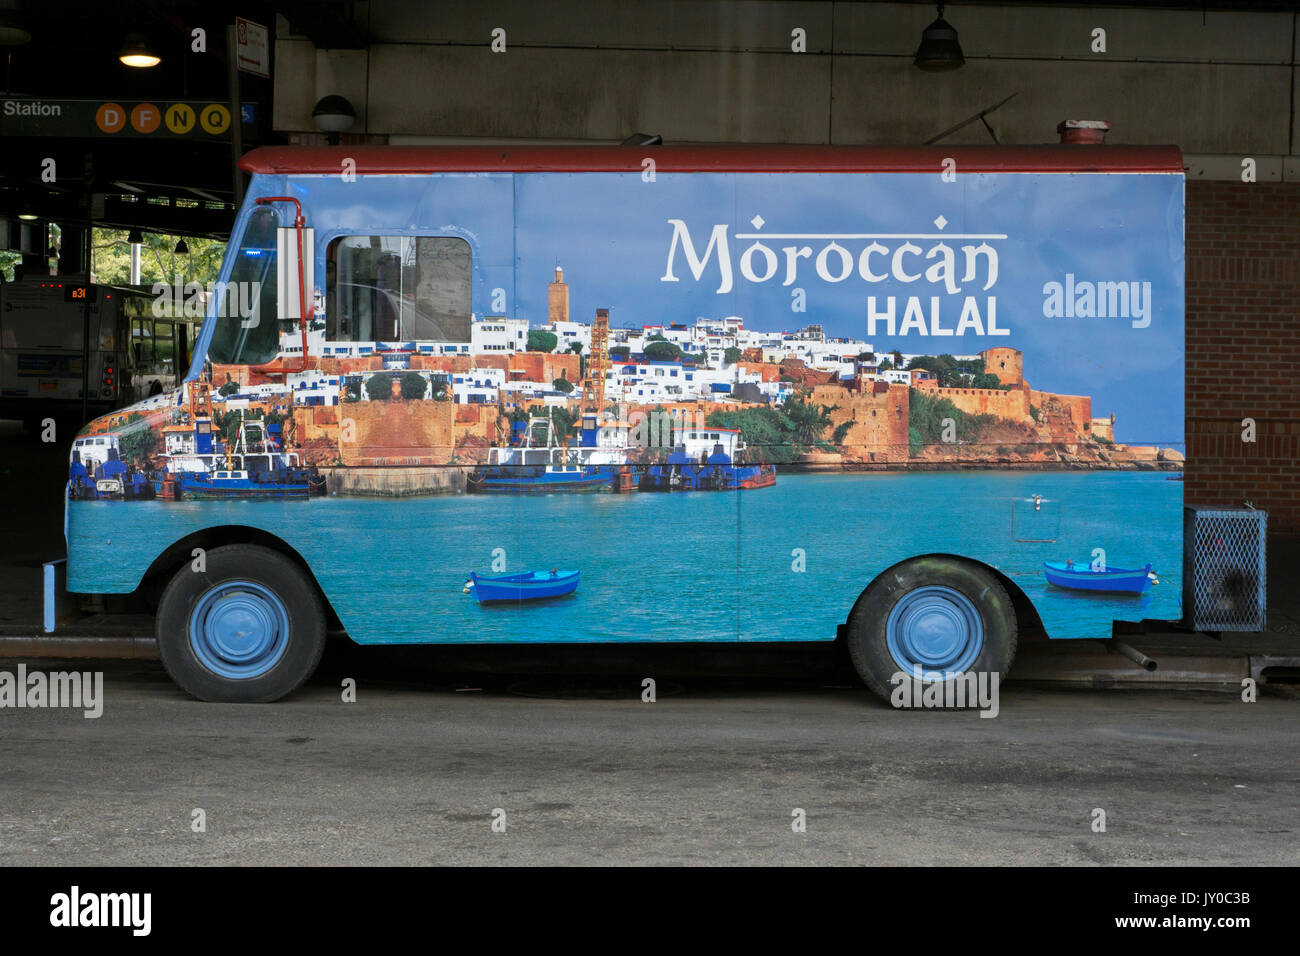 Moroccan Halal food truck parked near a subway station on Stillwell Avenue in Coney Island, Brooklyn, New York. - Stock Image